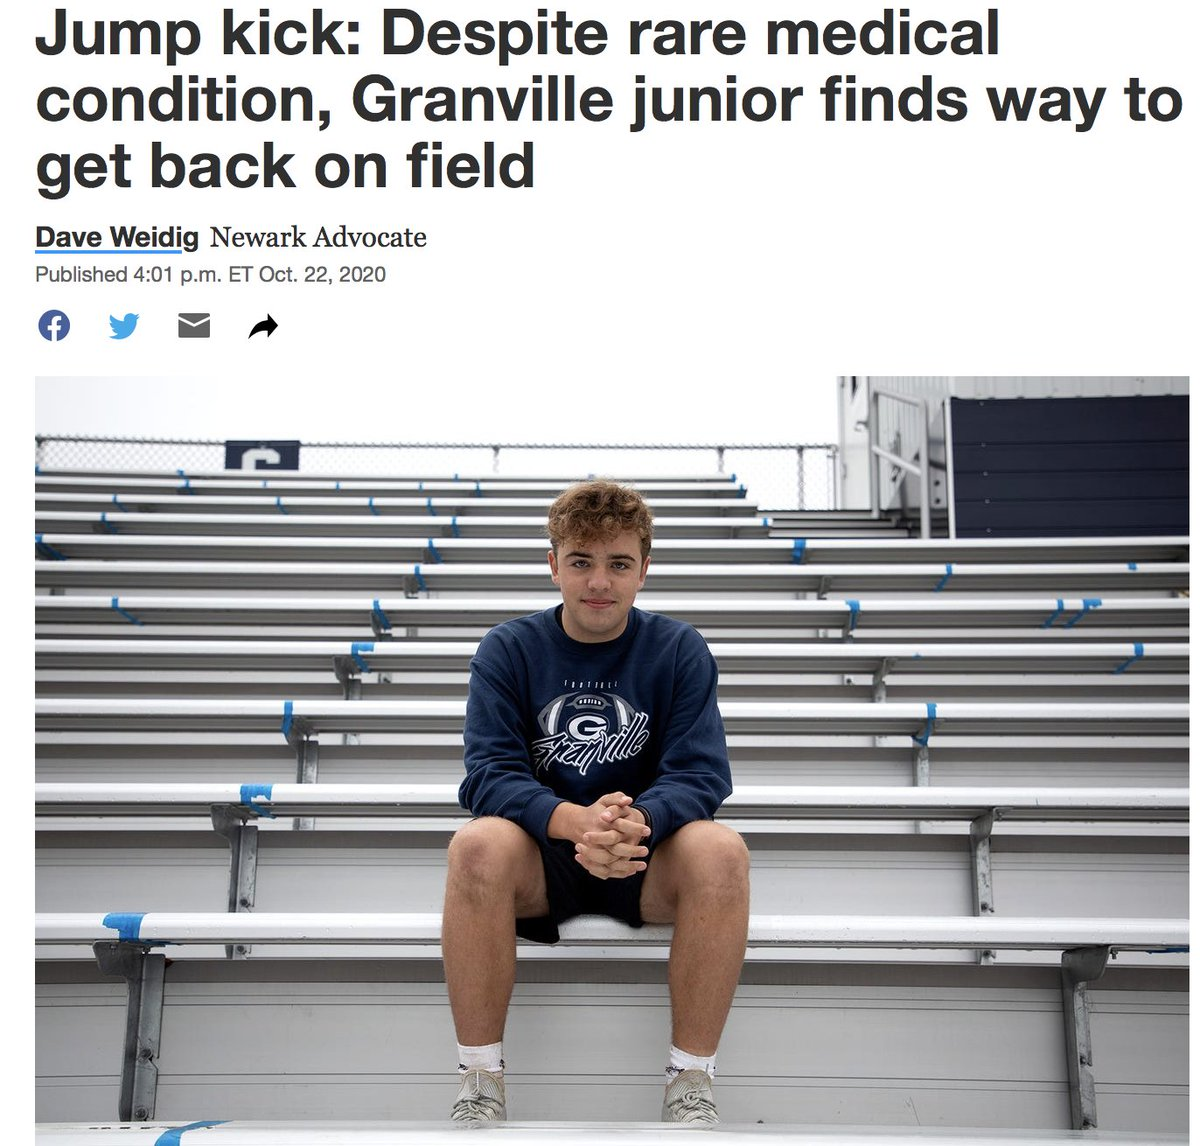 Great for the brand @PatMcAfeeShow  This is a great story on our local kicker @GV_Blue_Aces  Give it a read brother!  Article by @NewarkAdvocate  https://t.co/r4SexYjylR https://t.co/lEDtE8Z2re